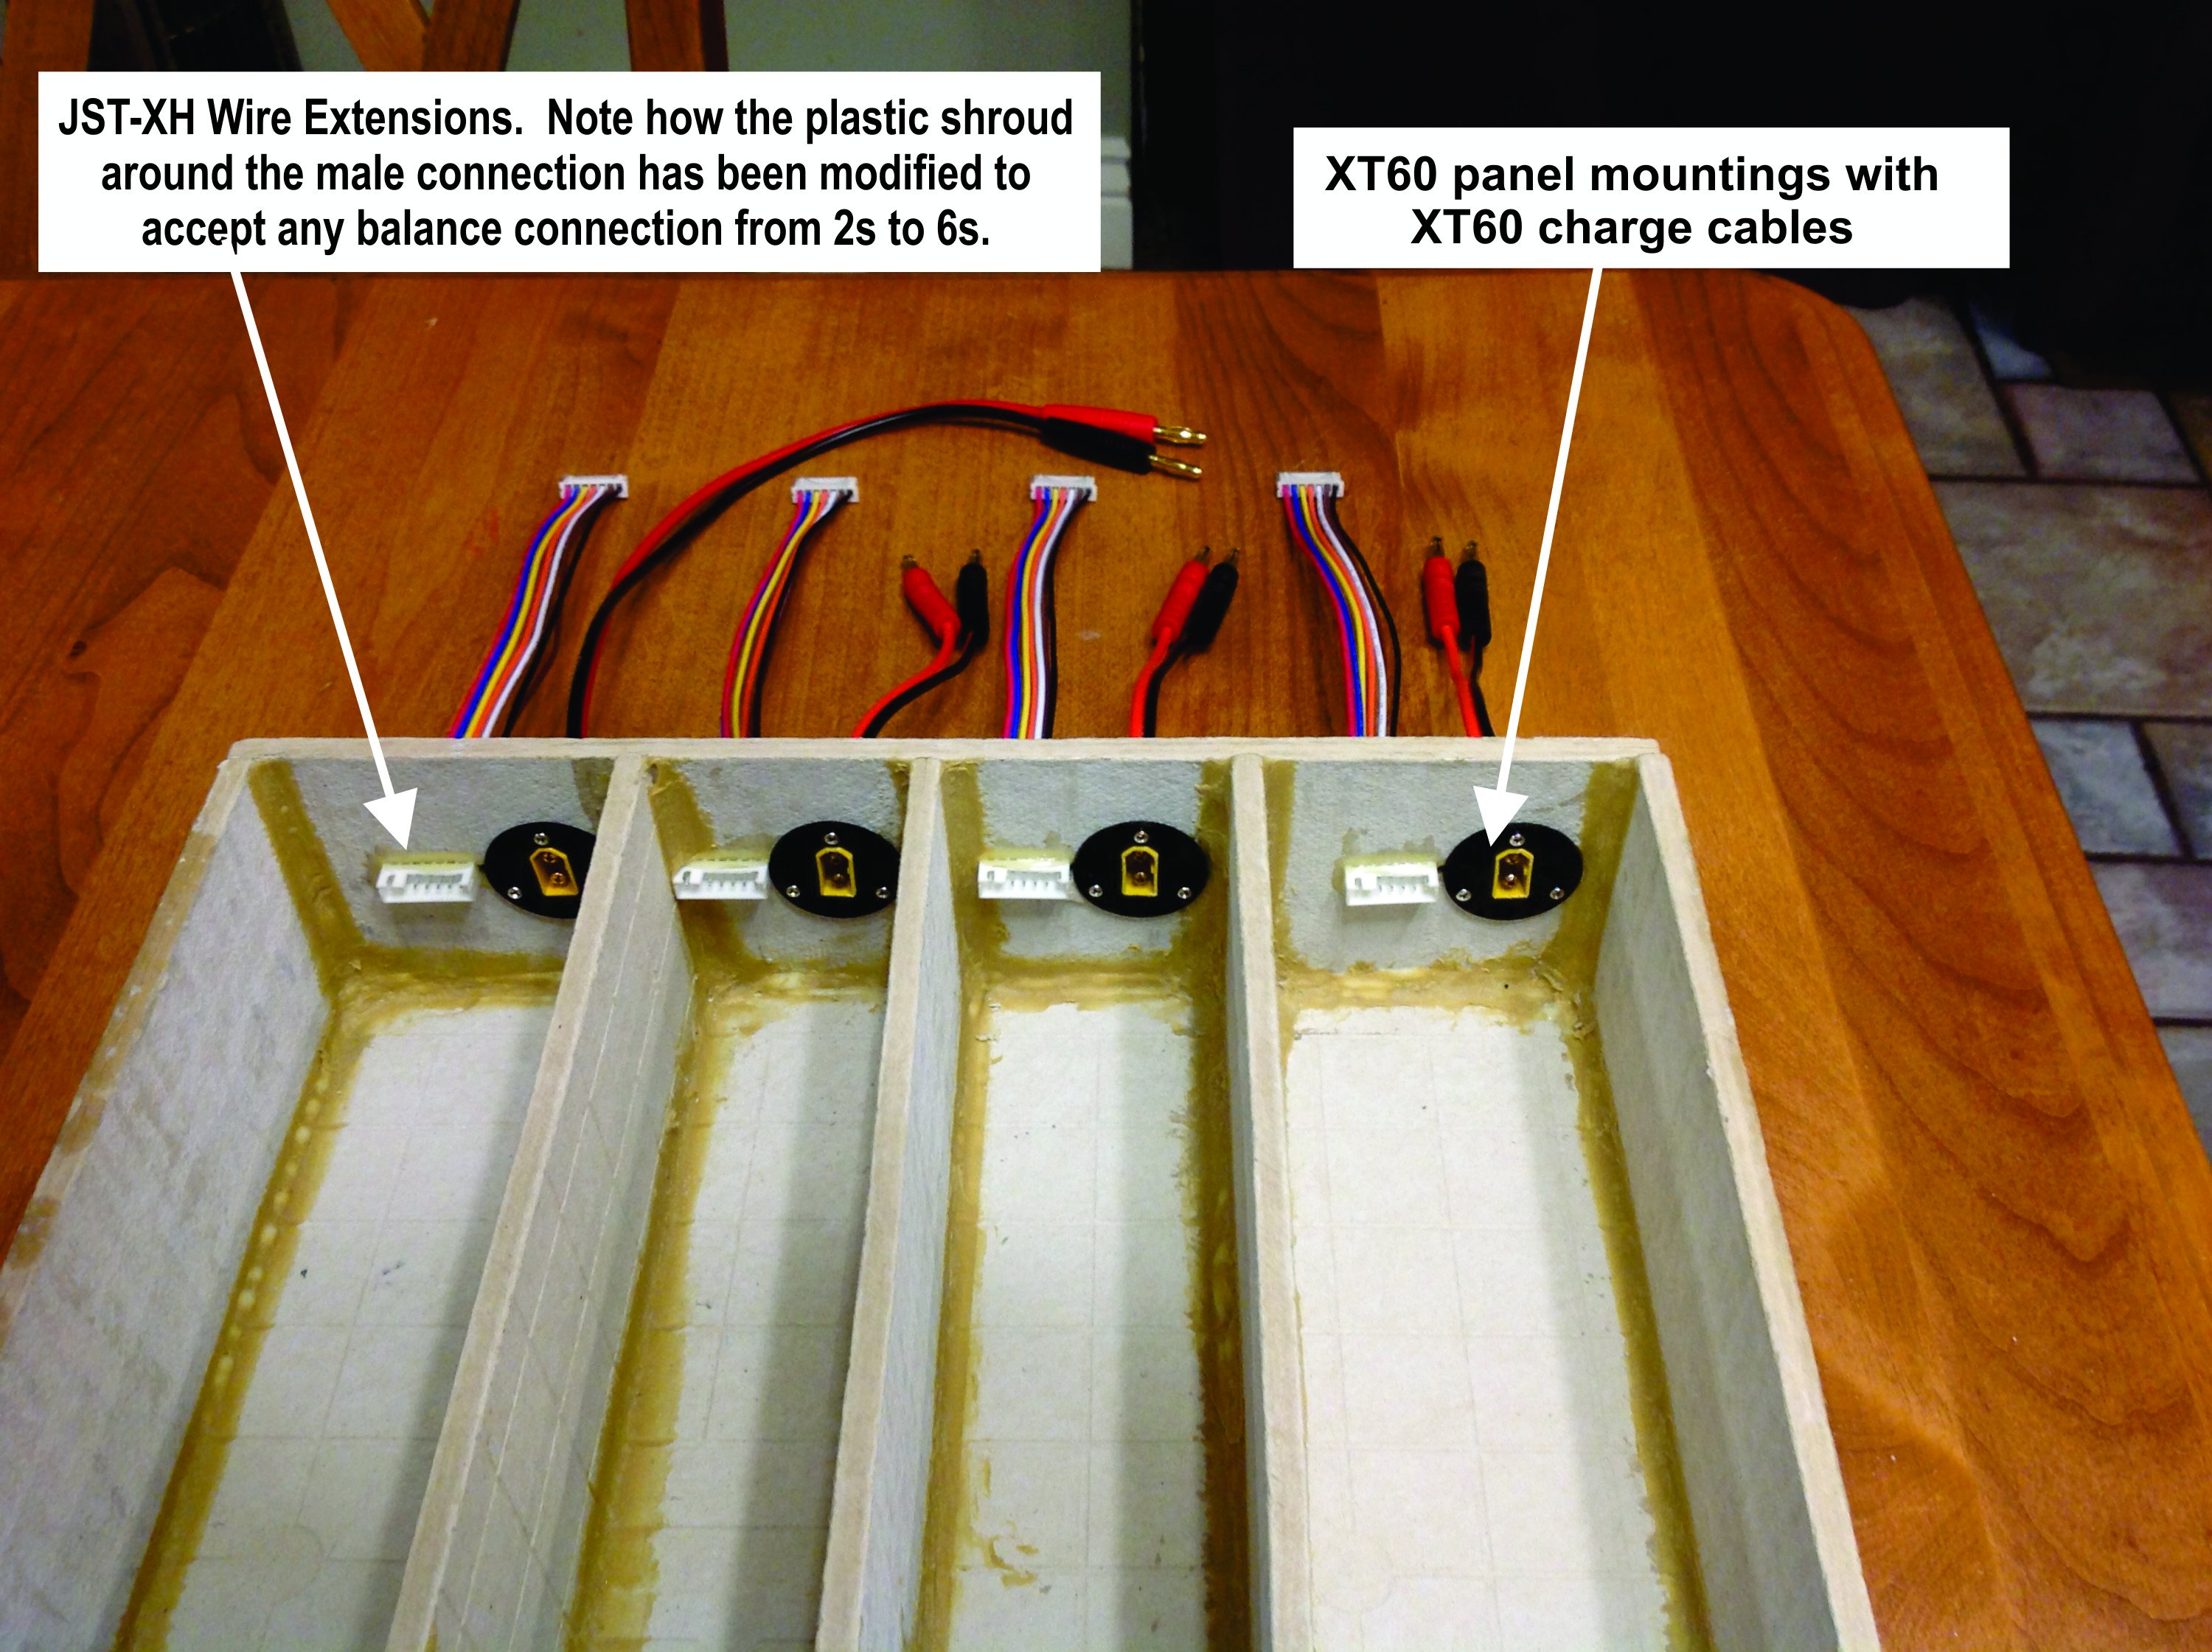 Lipo charging storage bunker alternative flite test wiring picture solutioingenieria Image collections